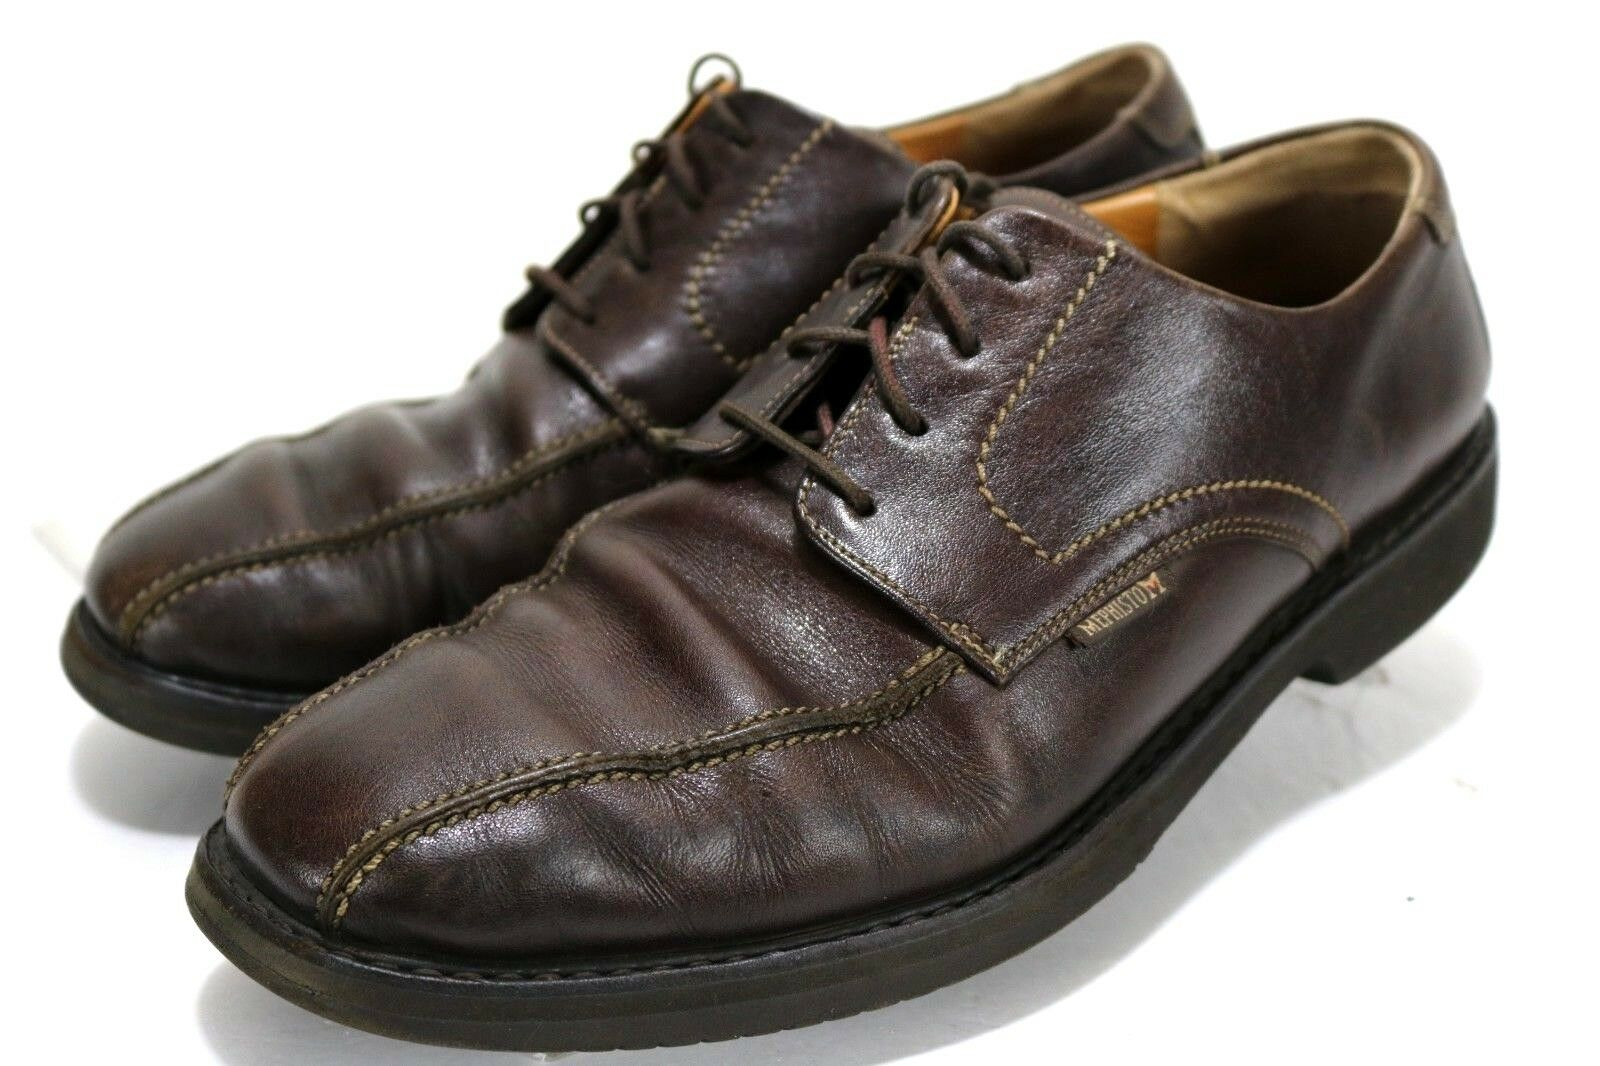 88f5ea69da1 Mephisto Air Relax Goodyear Welt 250 Men's Oxford shoes Size 9.5 ...